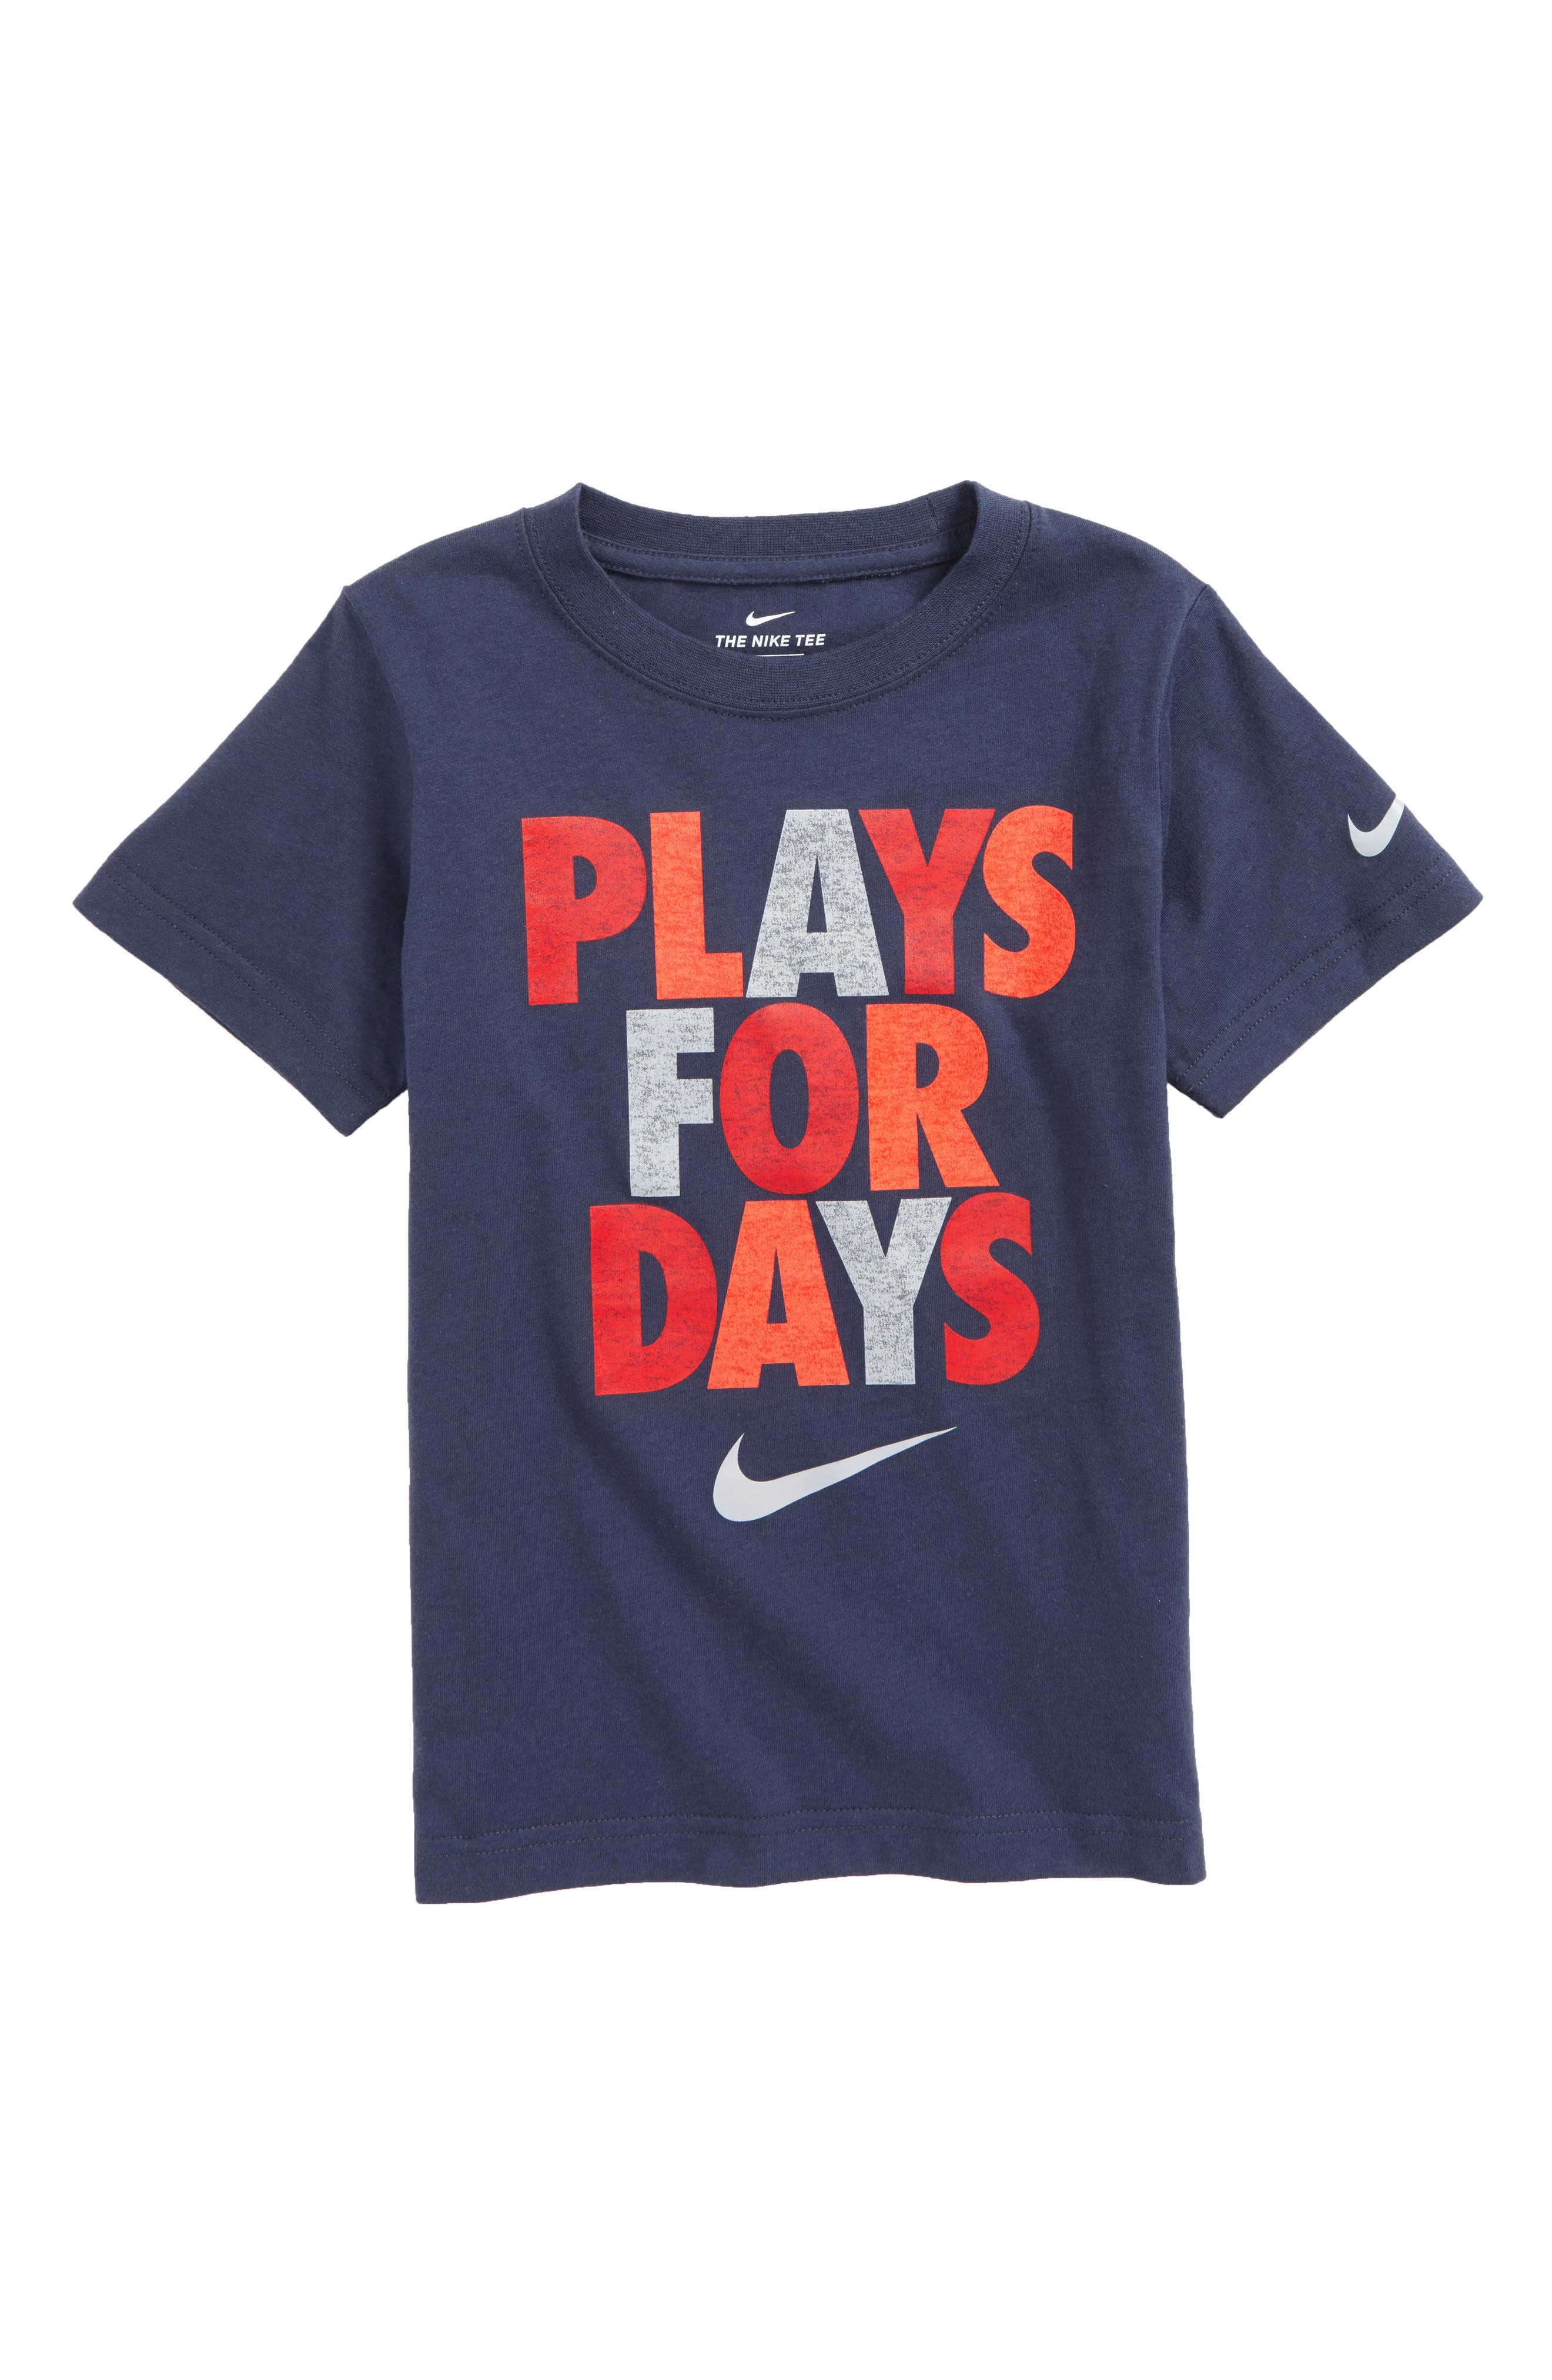 Plays for Days Graphic T-Shirt,                         Main,                         color, 411